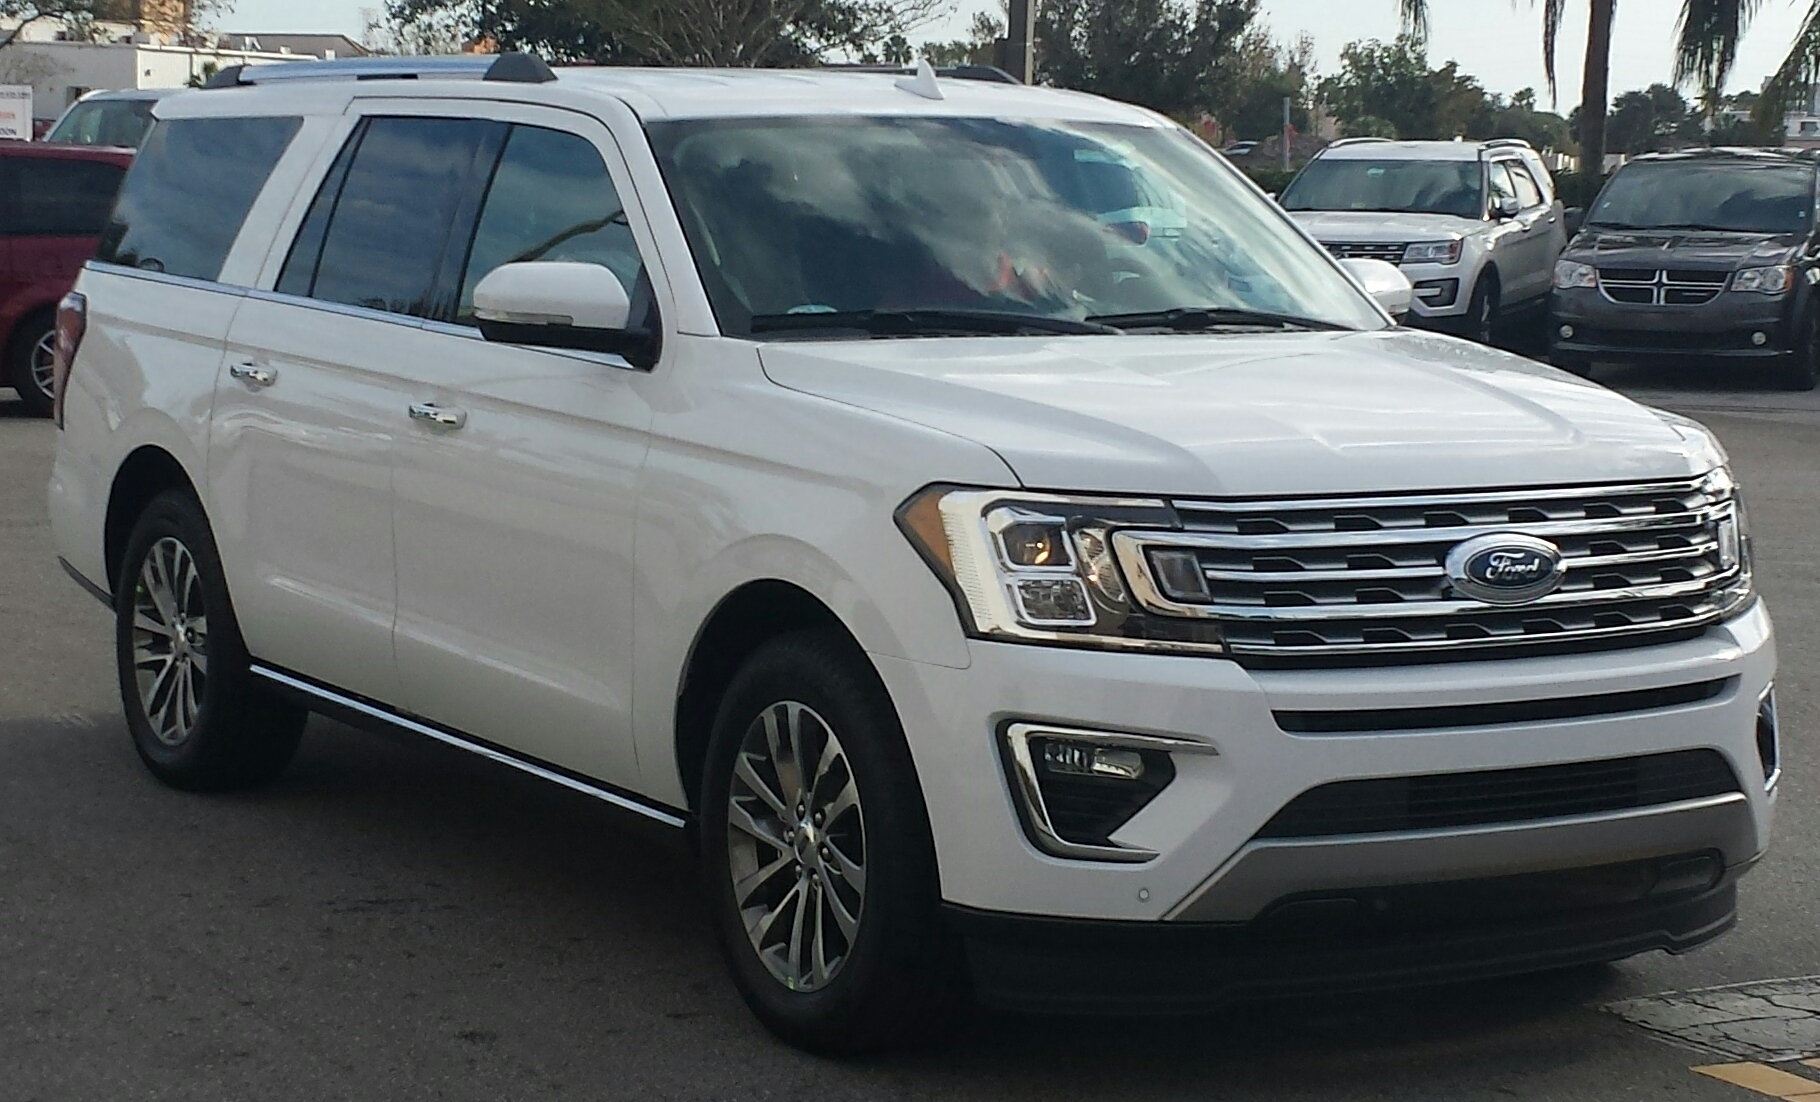 Ford Expedition Max Jpg